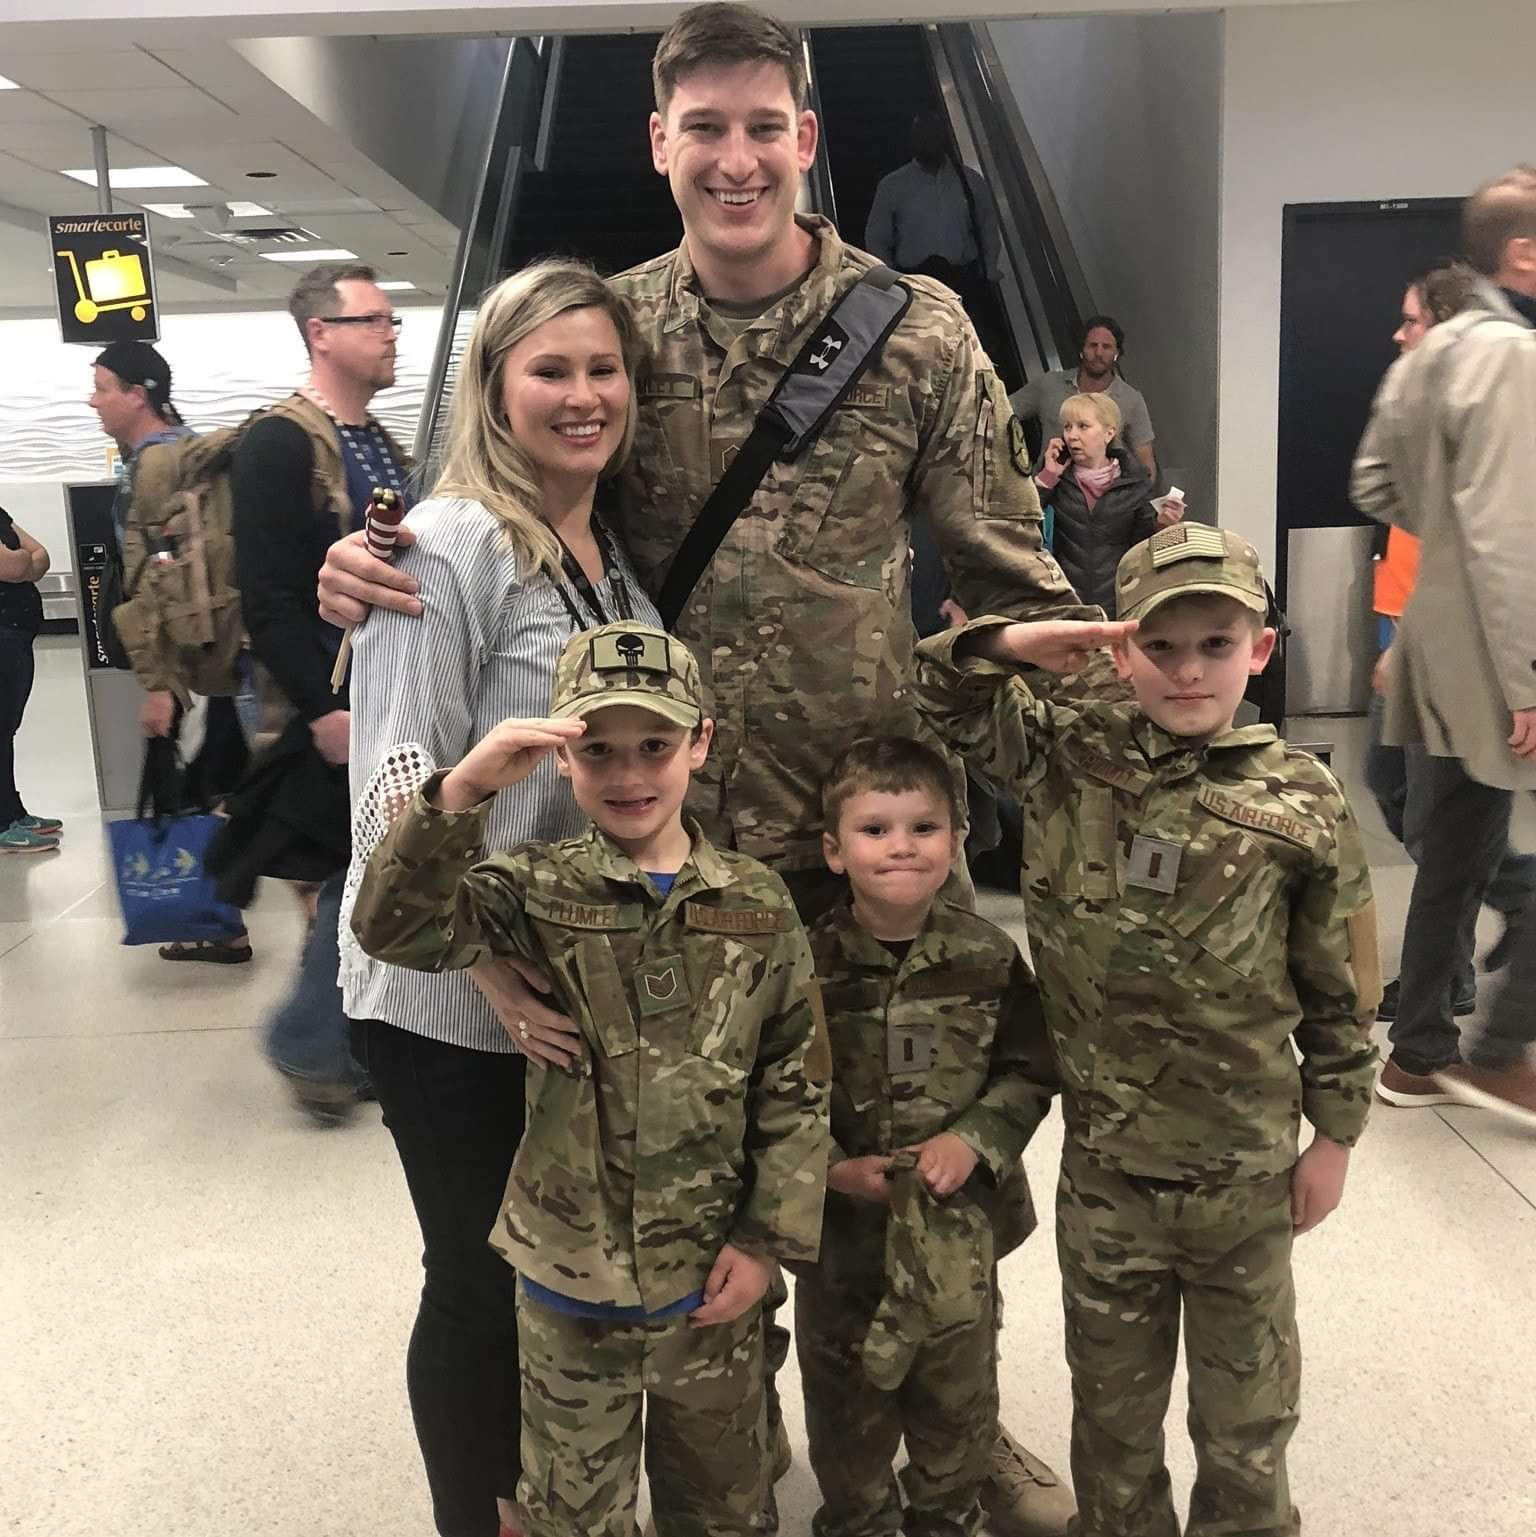 Family Disney World Trip